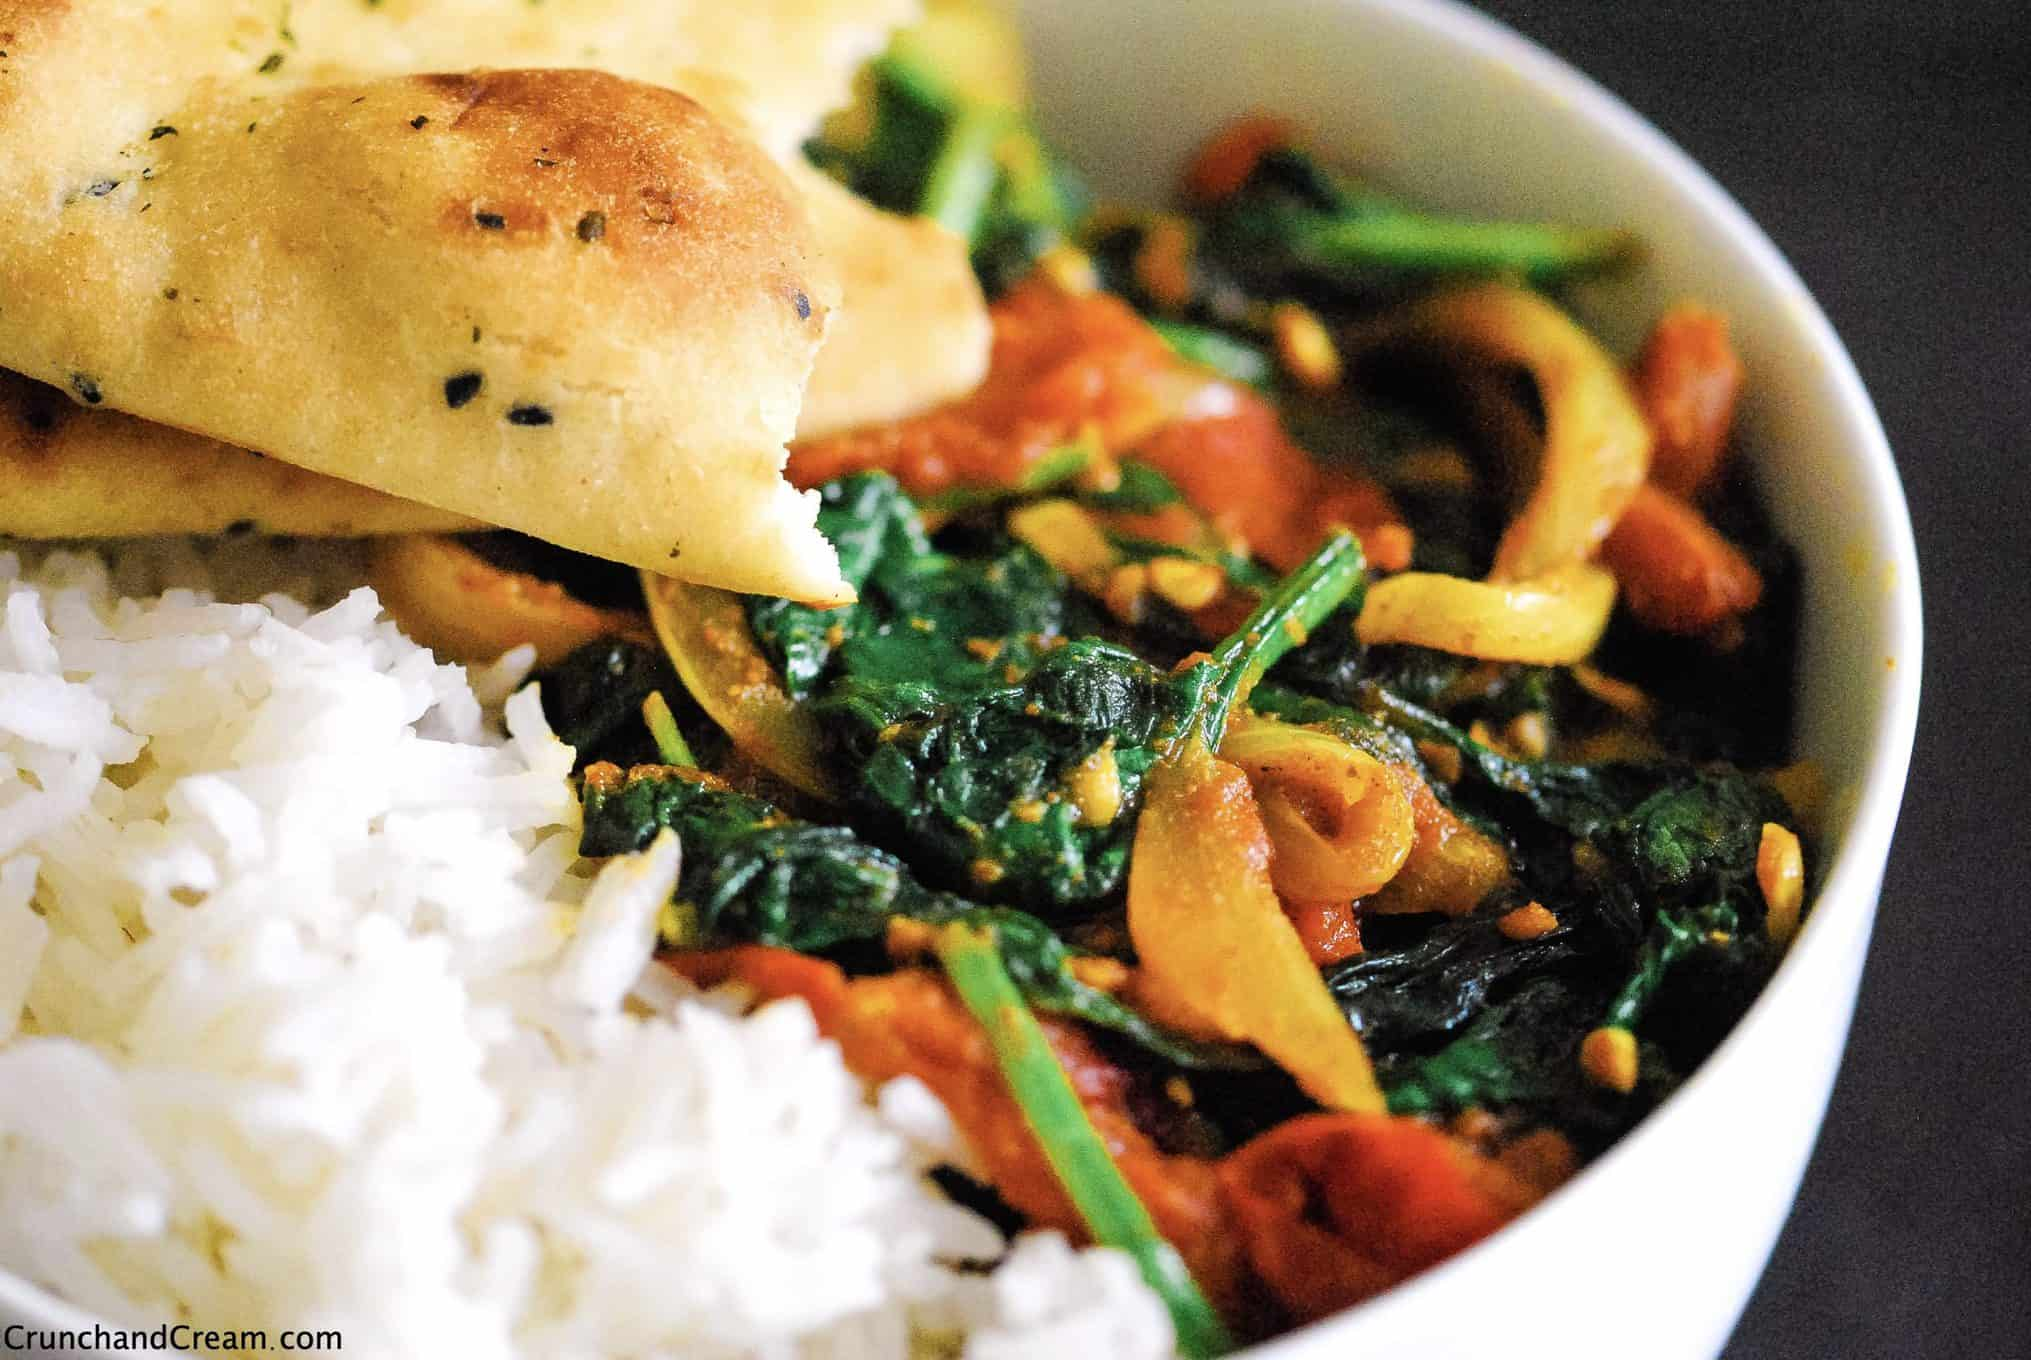 a close-up shot of a vegetable masala curry in a bowl with spinach, onions and tomatoes. Served with basmati rice and a torn naan bread.